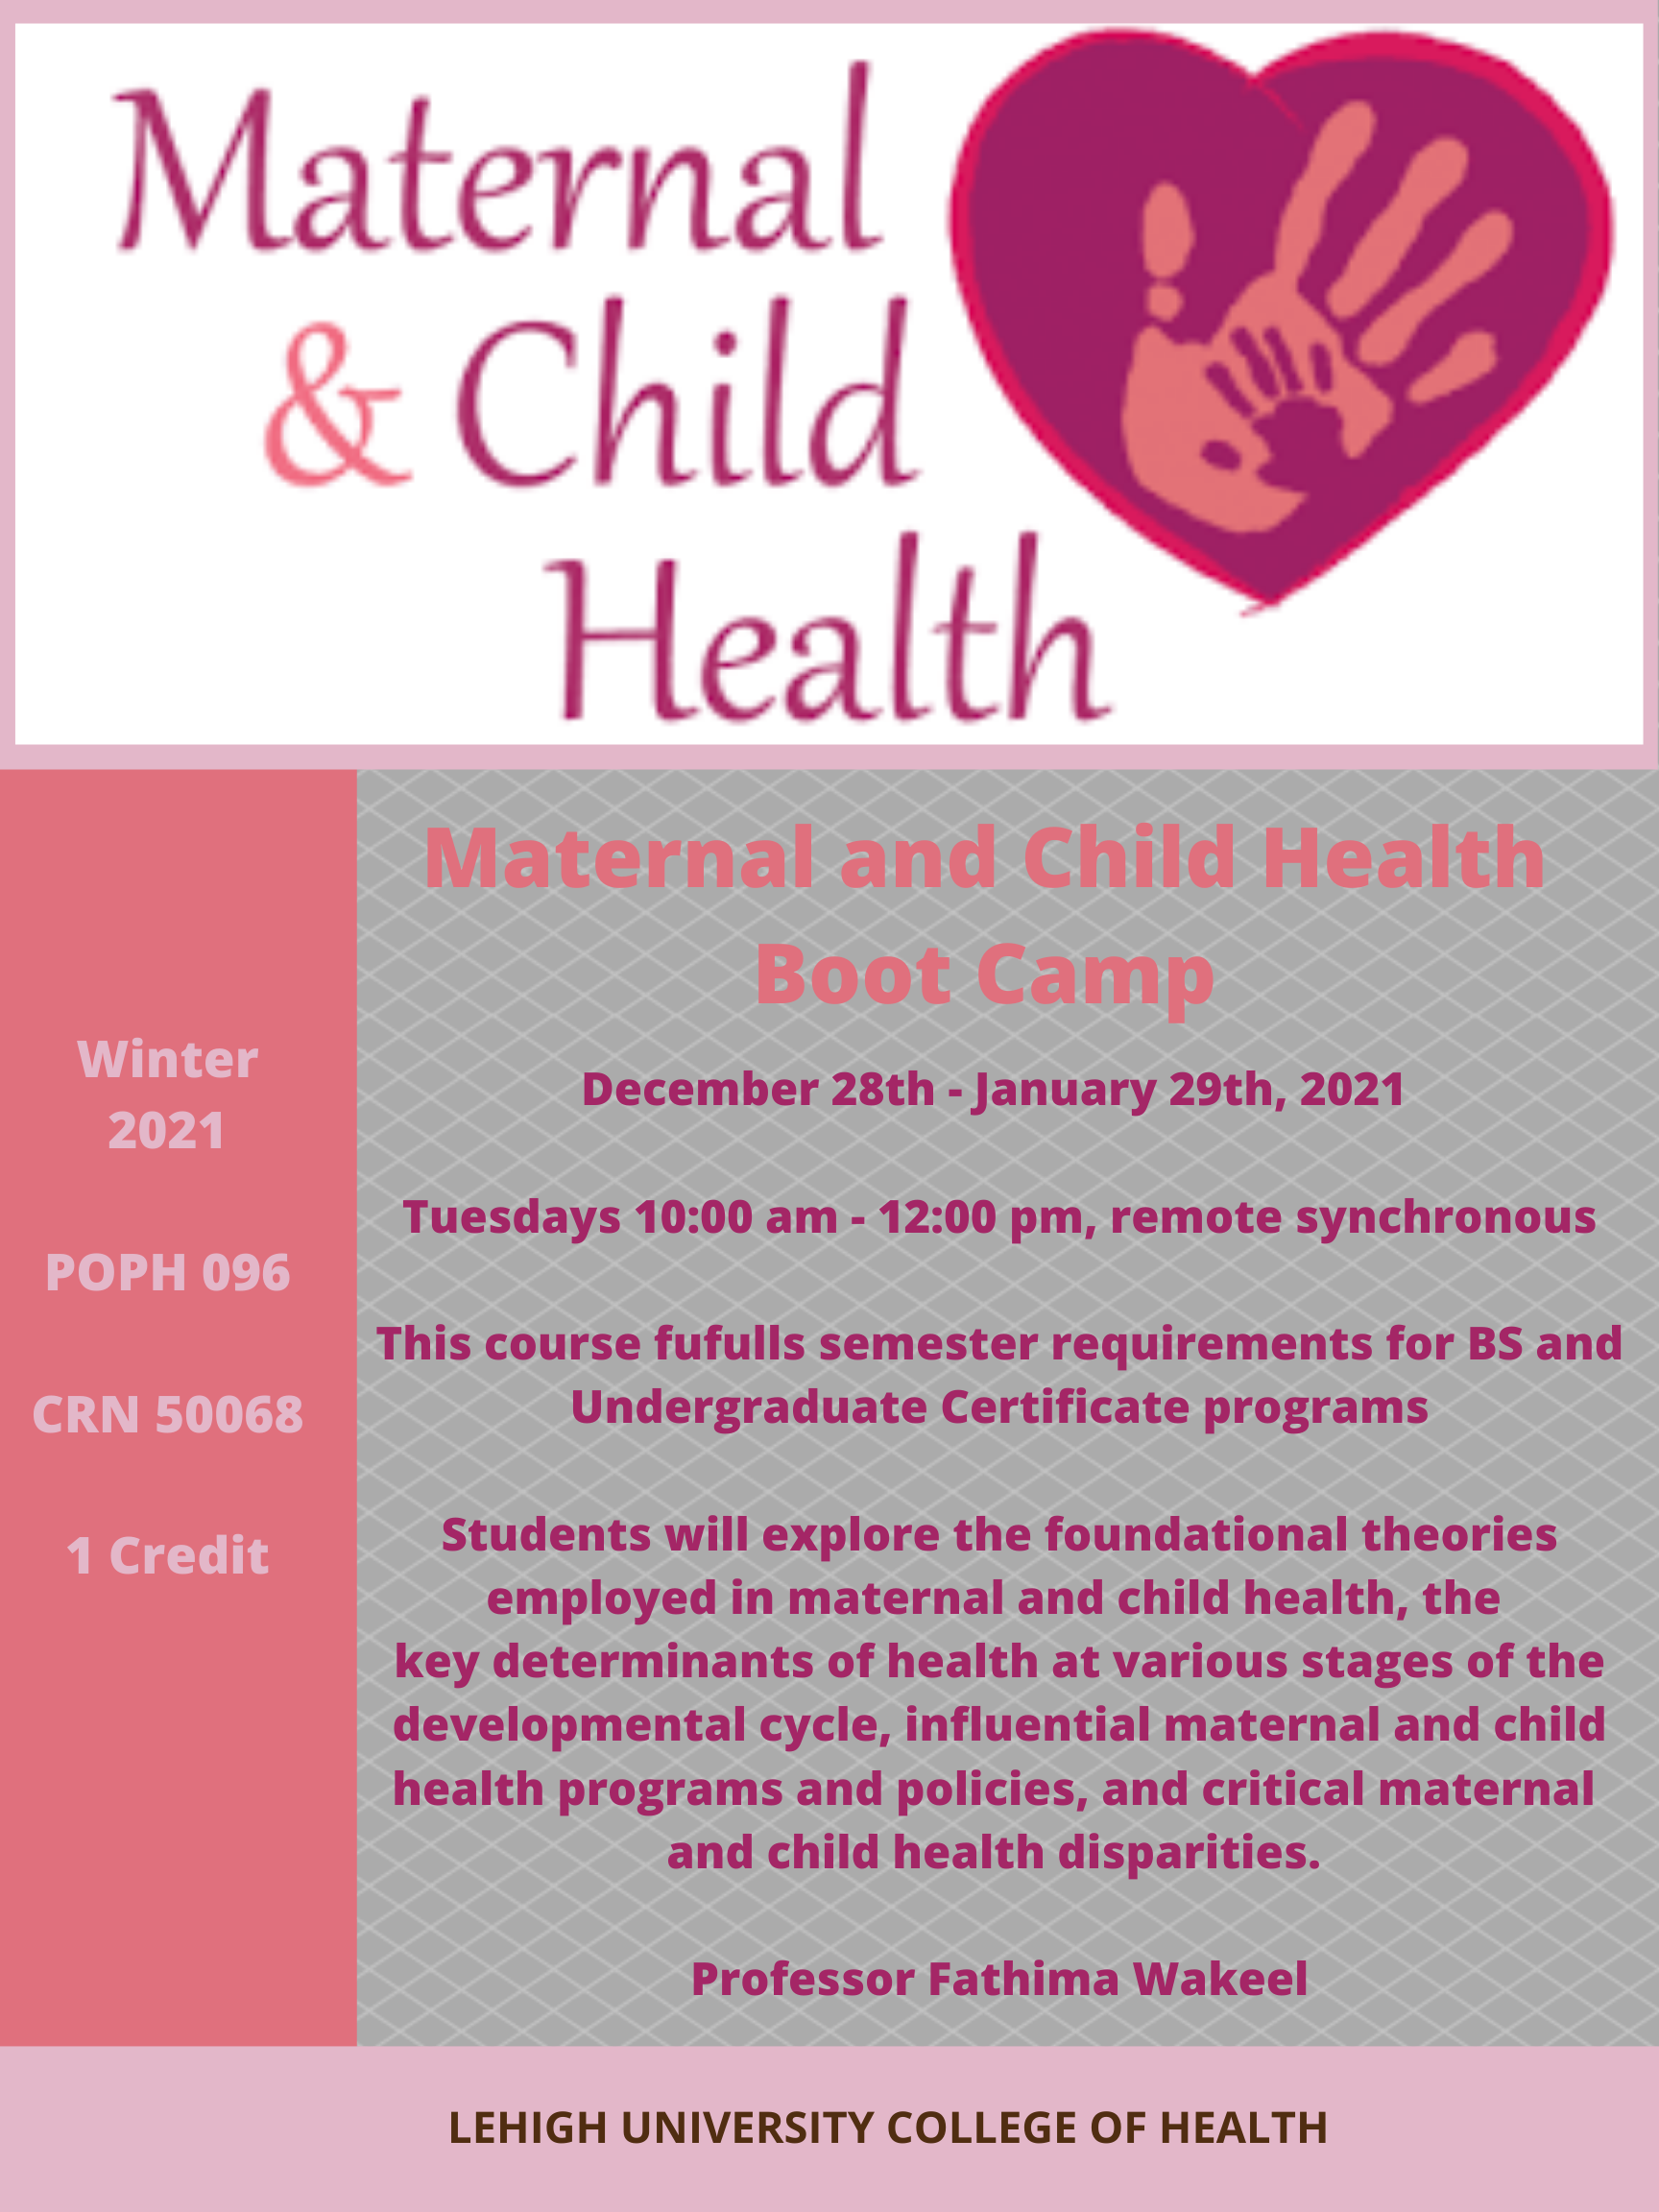 A flyer advertising Dr. Wakeel's class in Maternal and Child Health. It fulfills semester requirements for BS and undergraduate certificate programs. It is 1 credit, and takes place on Tuesdays from 10:00am to 12:00pm.